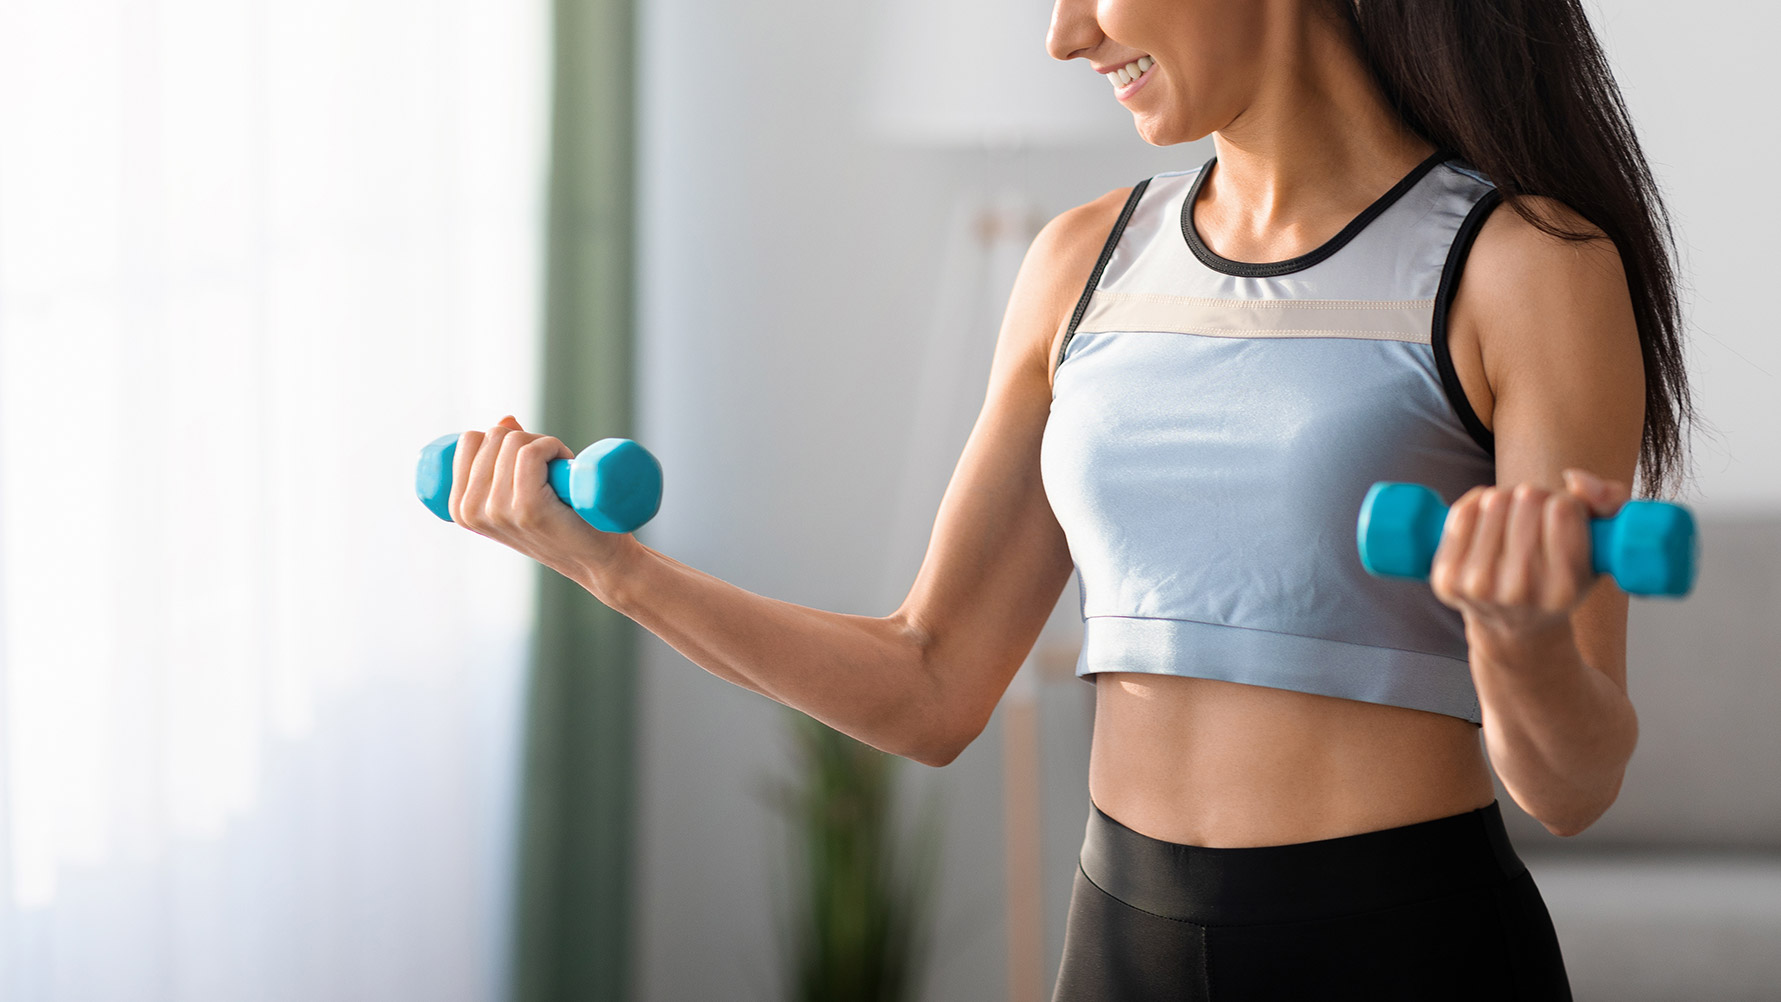 good morning exercise with dumbbell